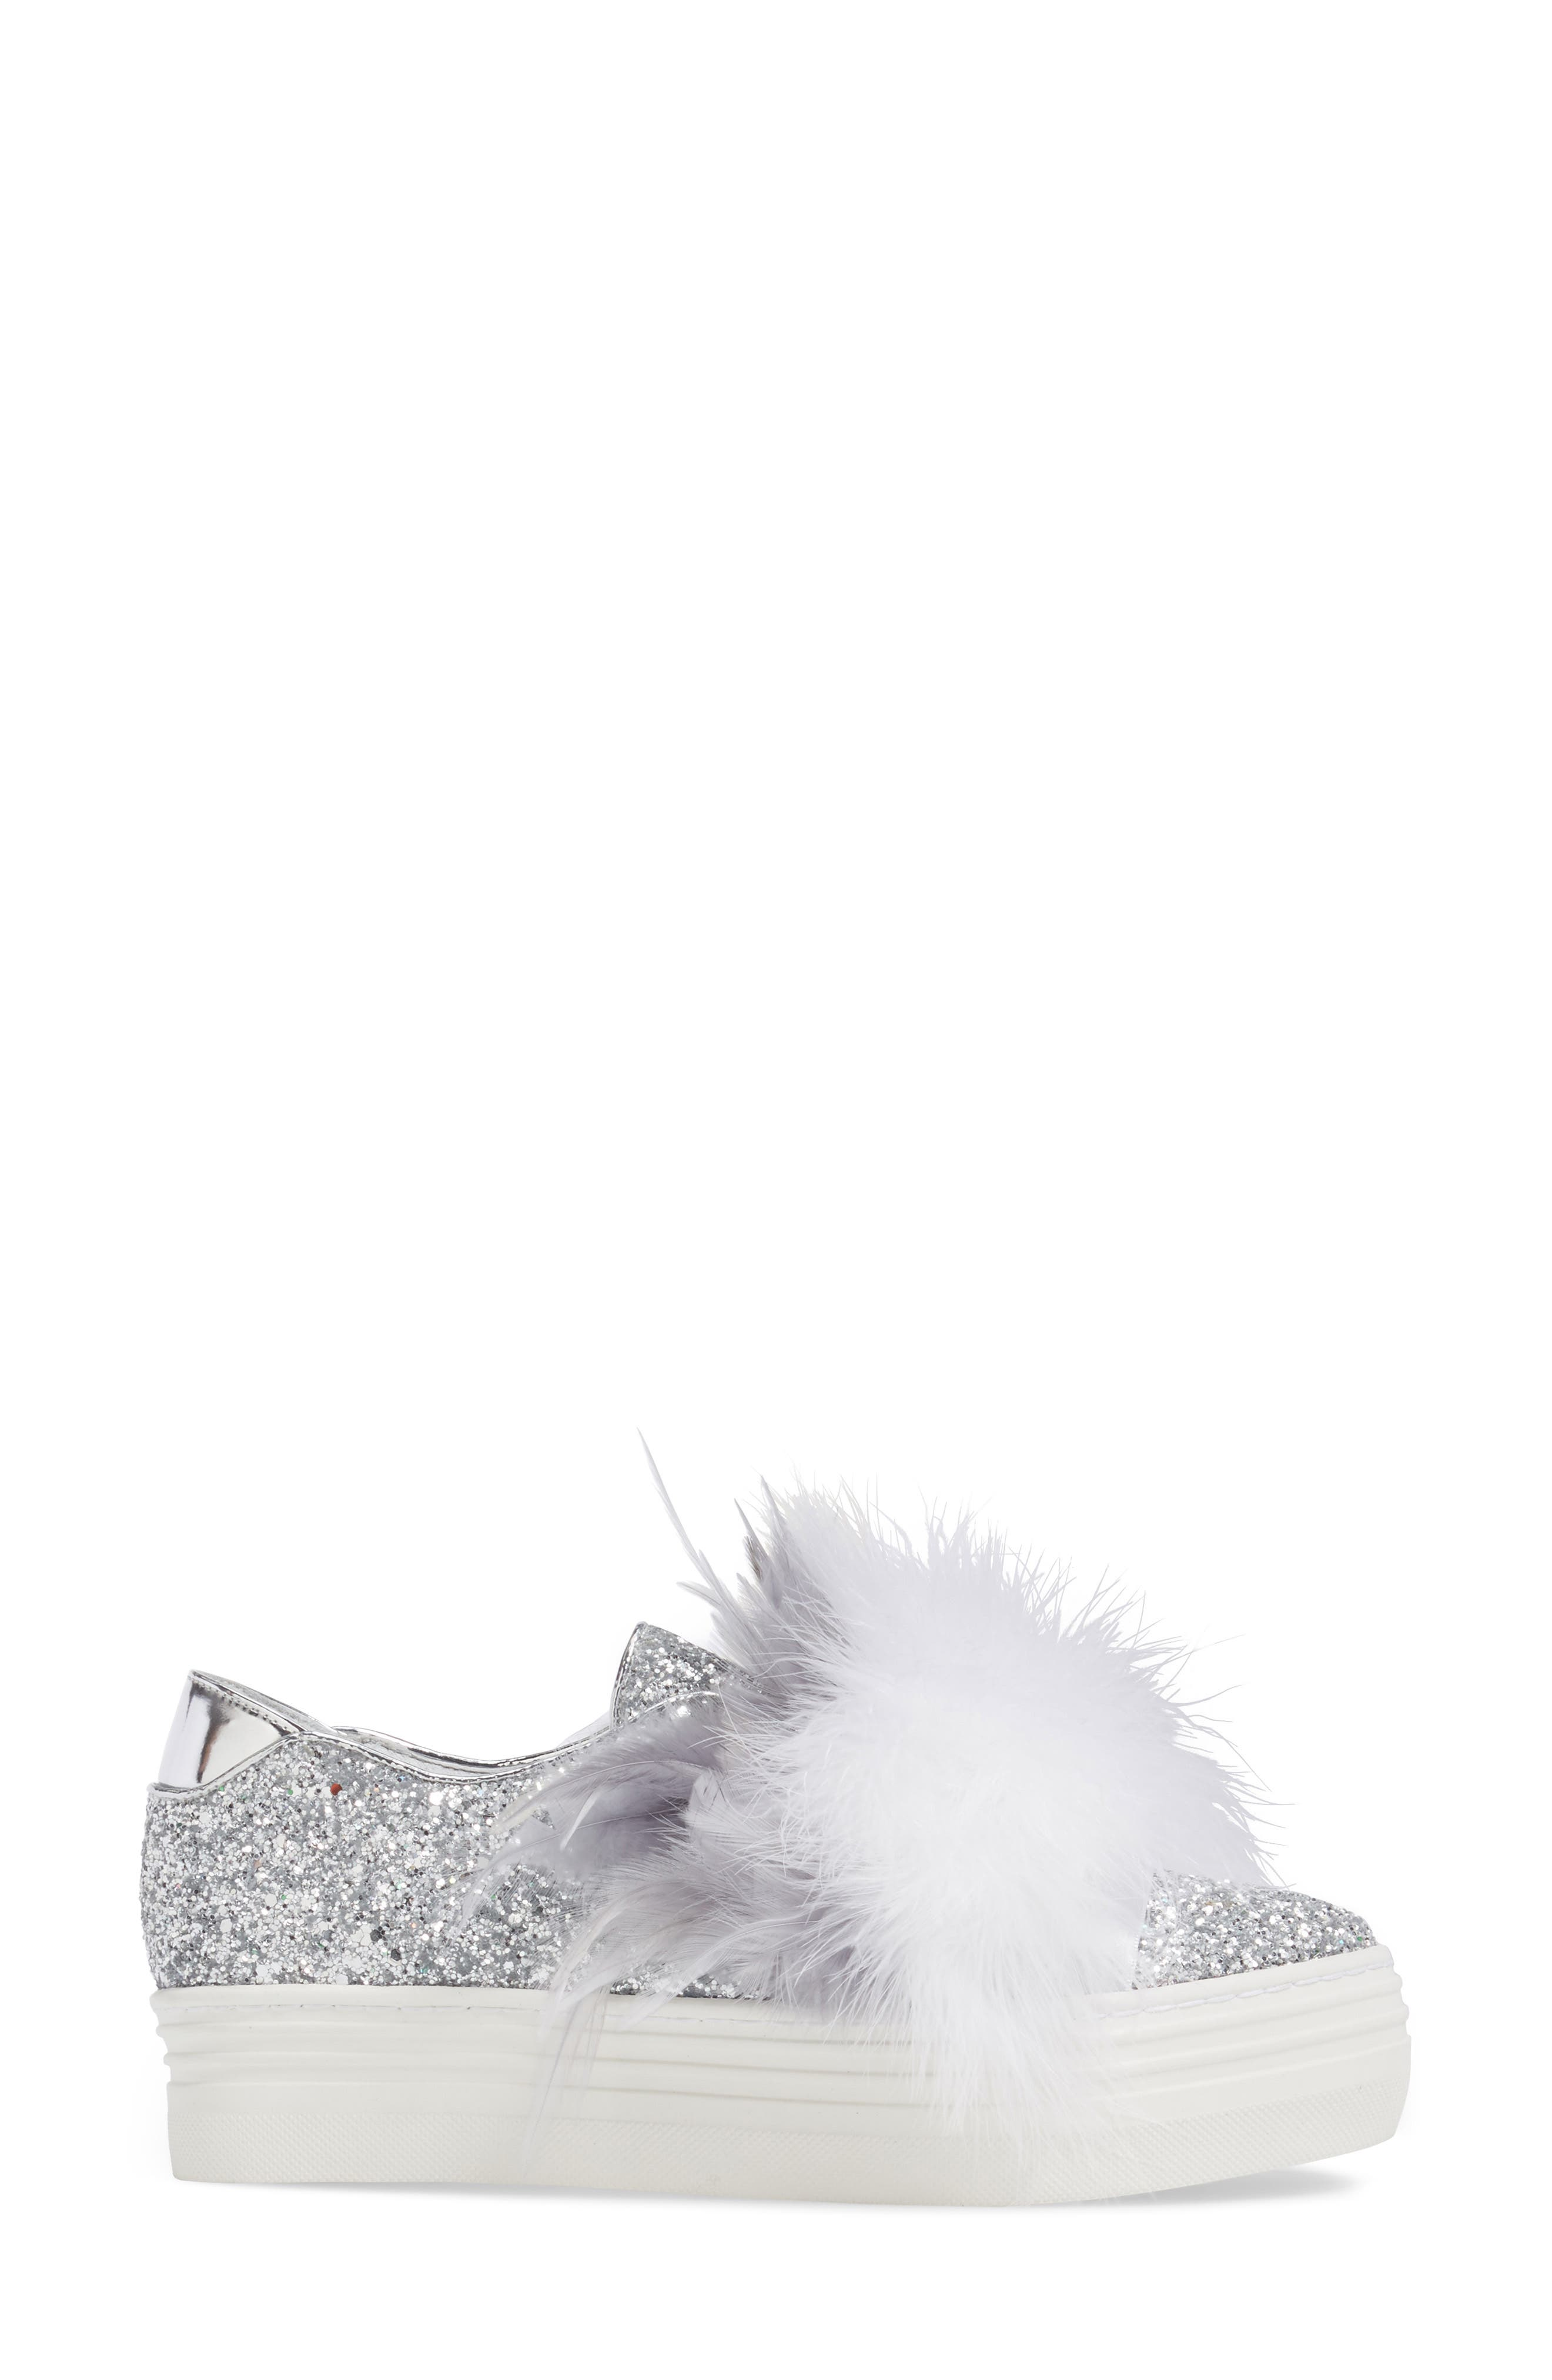 Kate Feathered Slip-On Sneaker,                             Alternate thumbnail 3, color,                             Grey Feather Silver Glitter